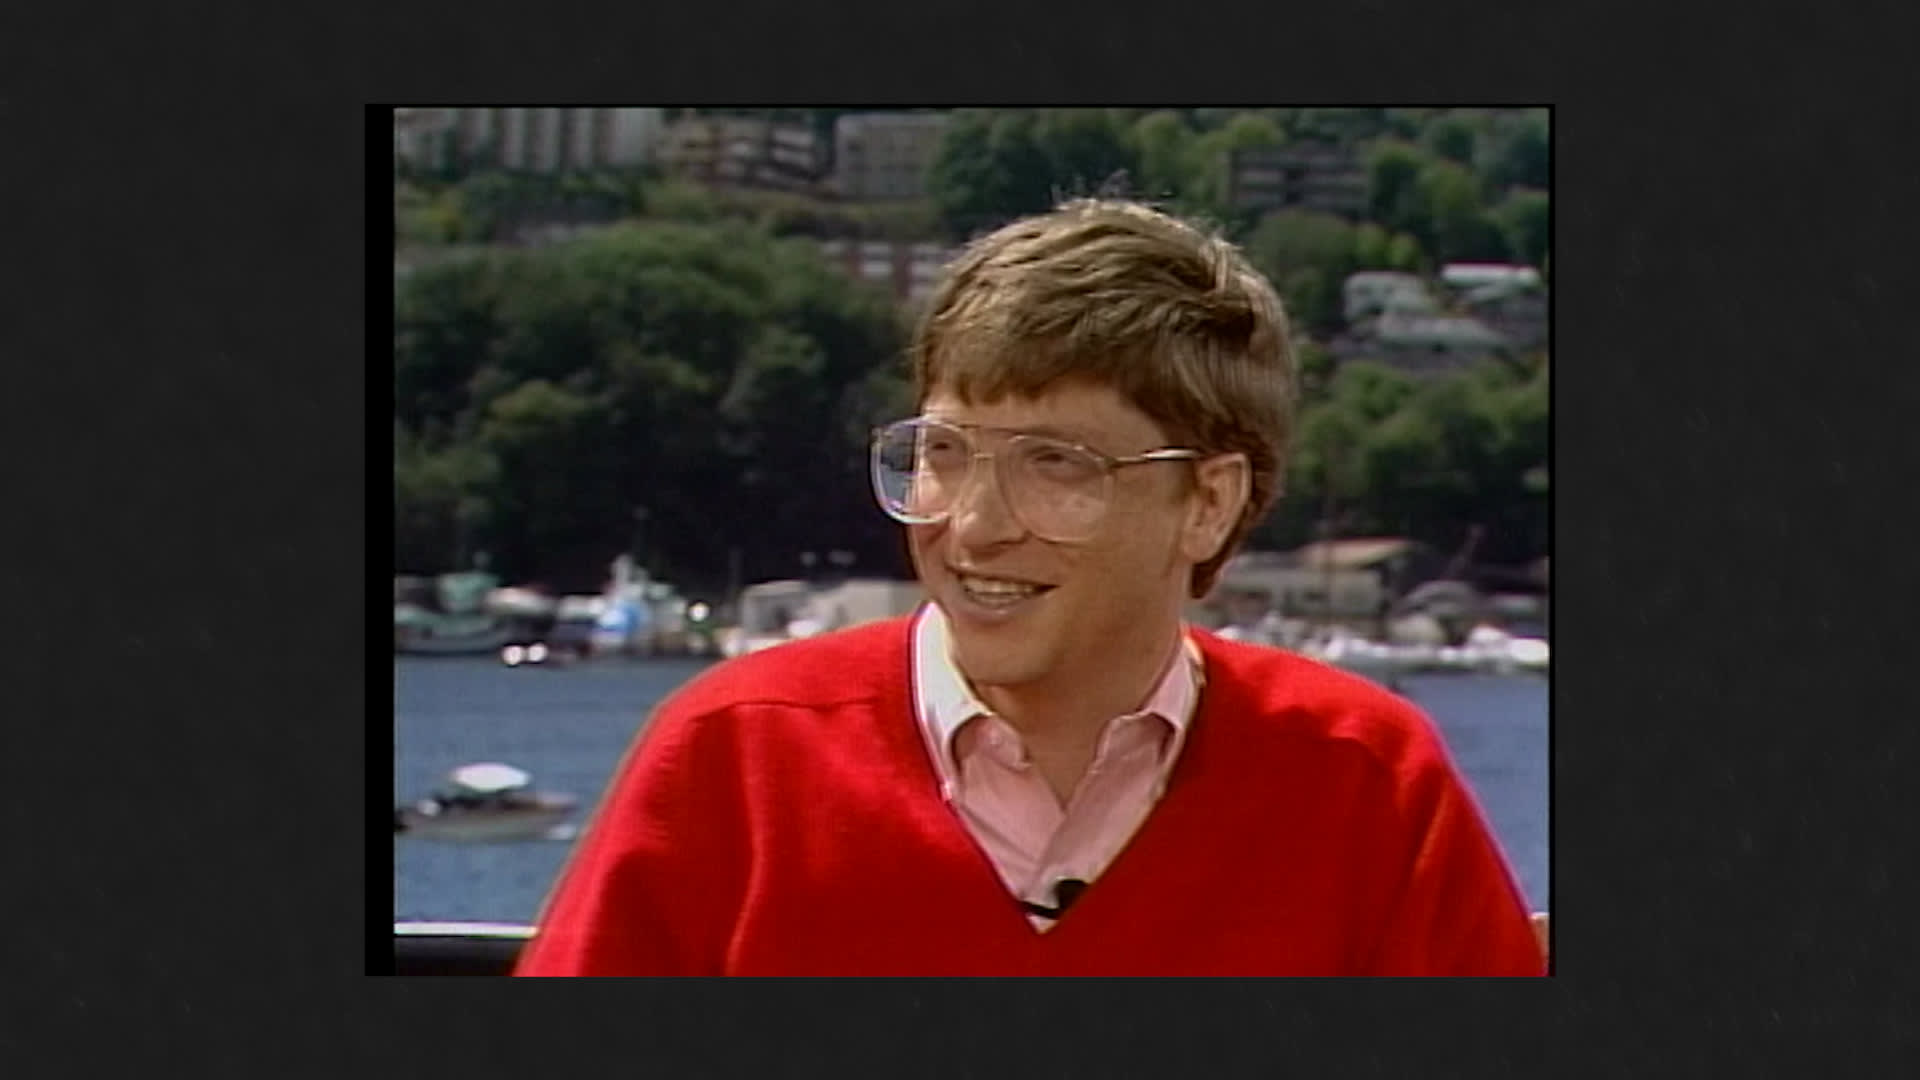 At 63, Bill Gates says he now asks himself these 3 questions that he wouldn't have in his 20s